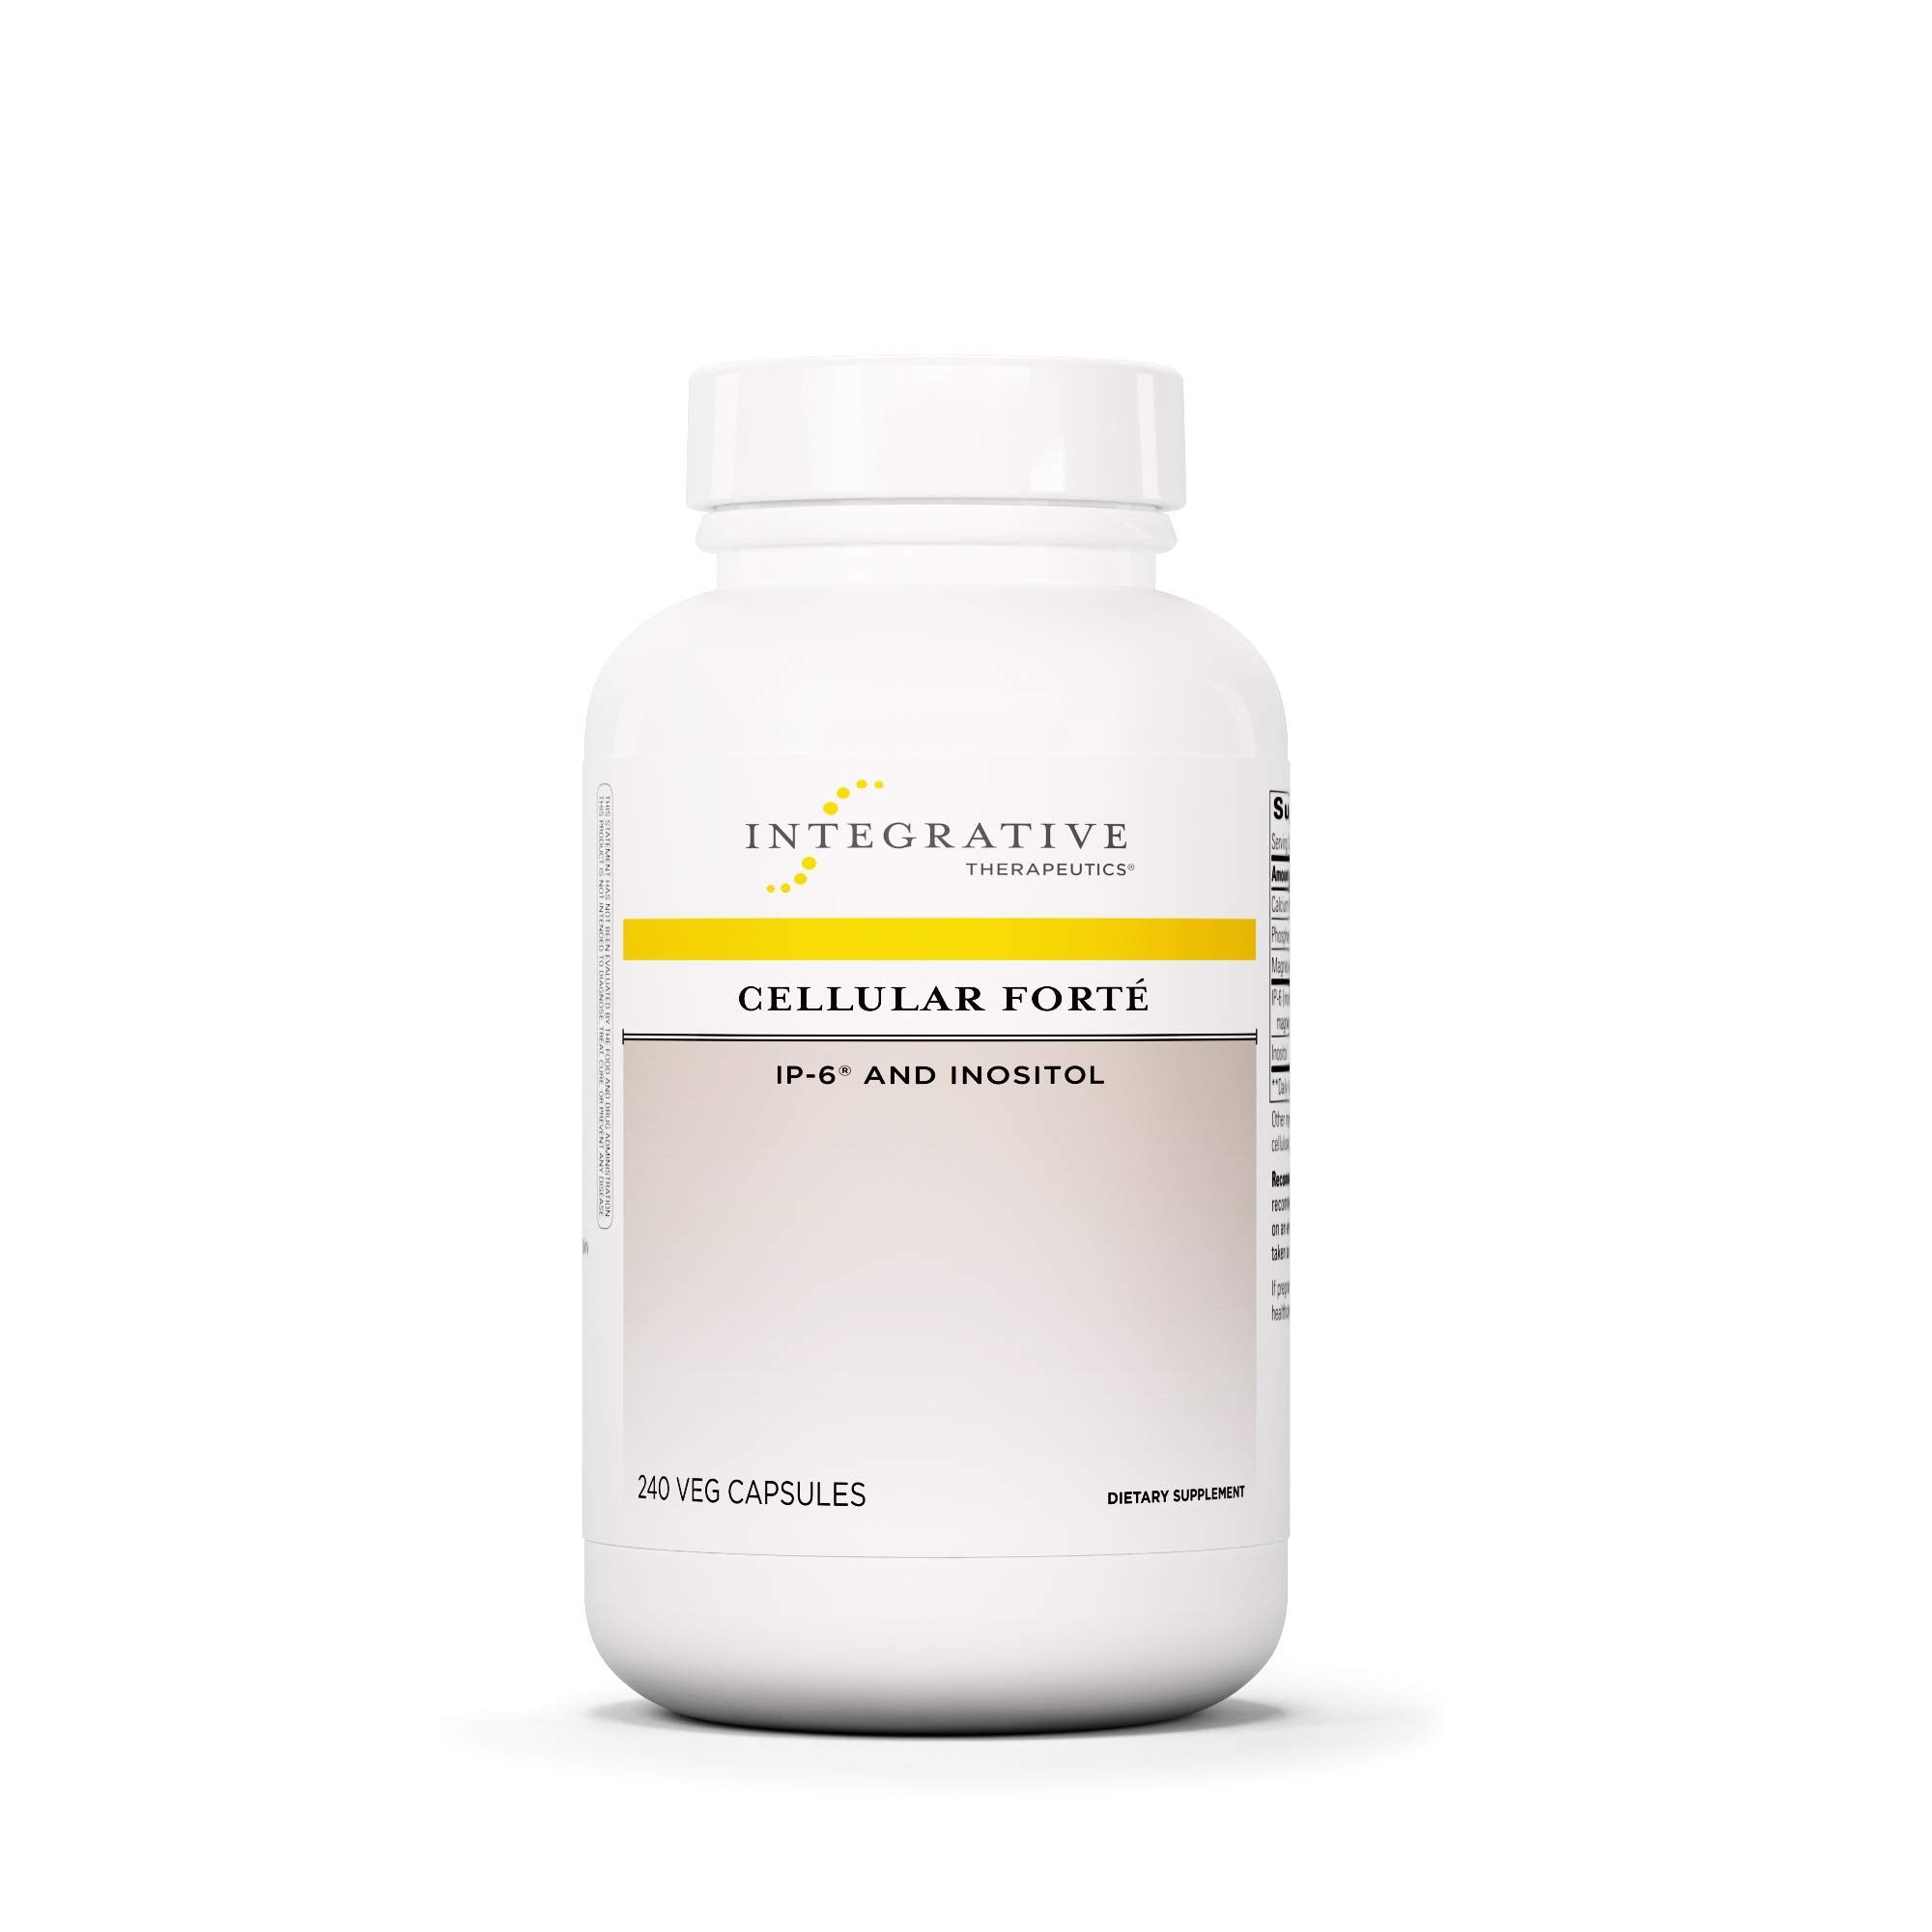 Integrative Therapeutics - Cellular Forte with IP-6 and Inosotol - Immune Support Supplement - 240 Capsules by Integrative Therapeutics